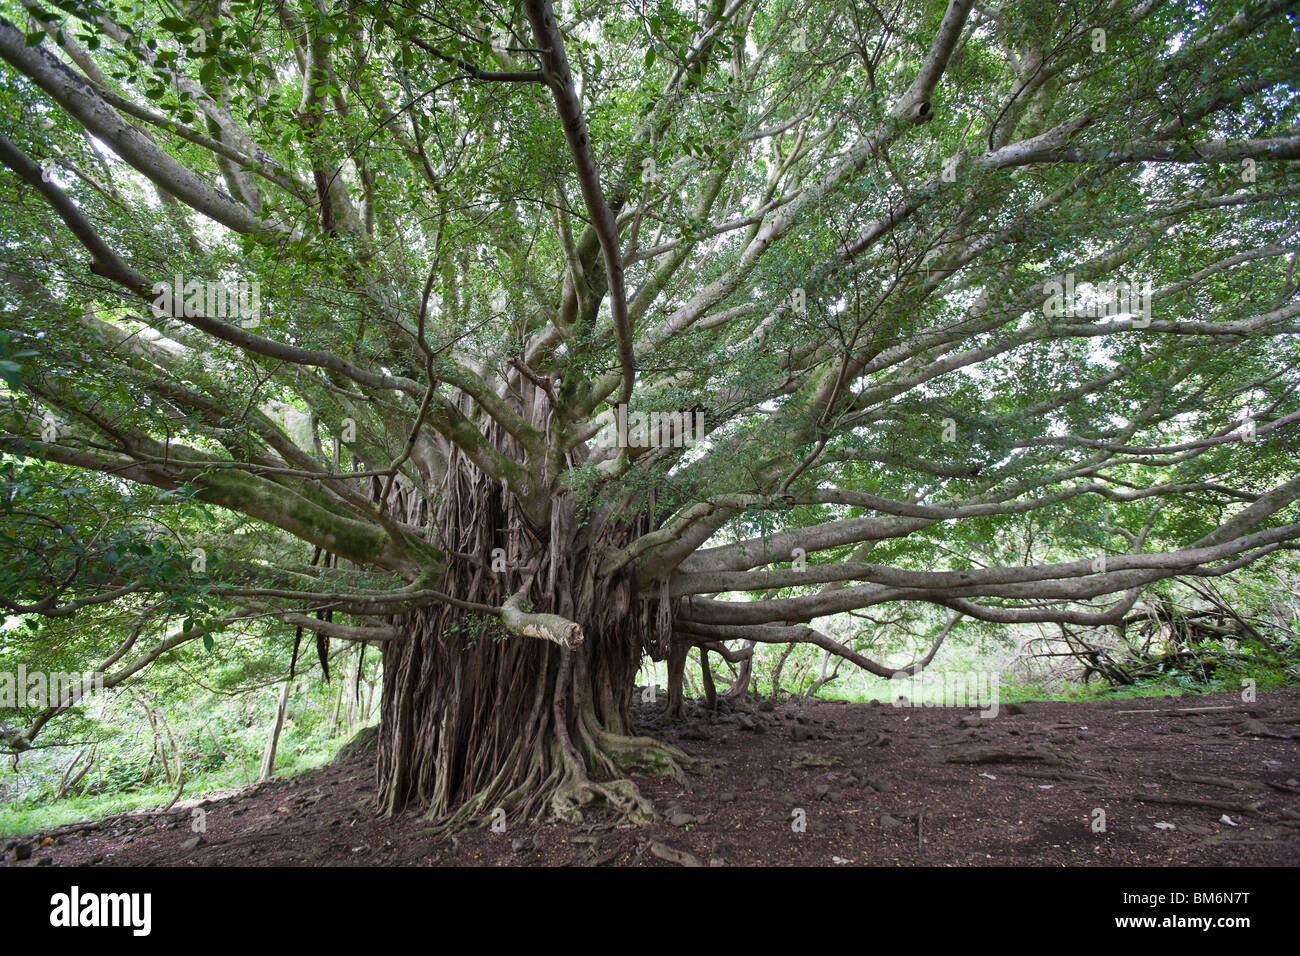 Good Aerial Root Ficus Benjamina - a-large-spreading-banyan-tree-ficus-sp-sends-aerial-roots-around-a-BM6N7T  Collection_42828.jpg